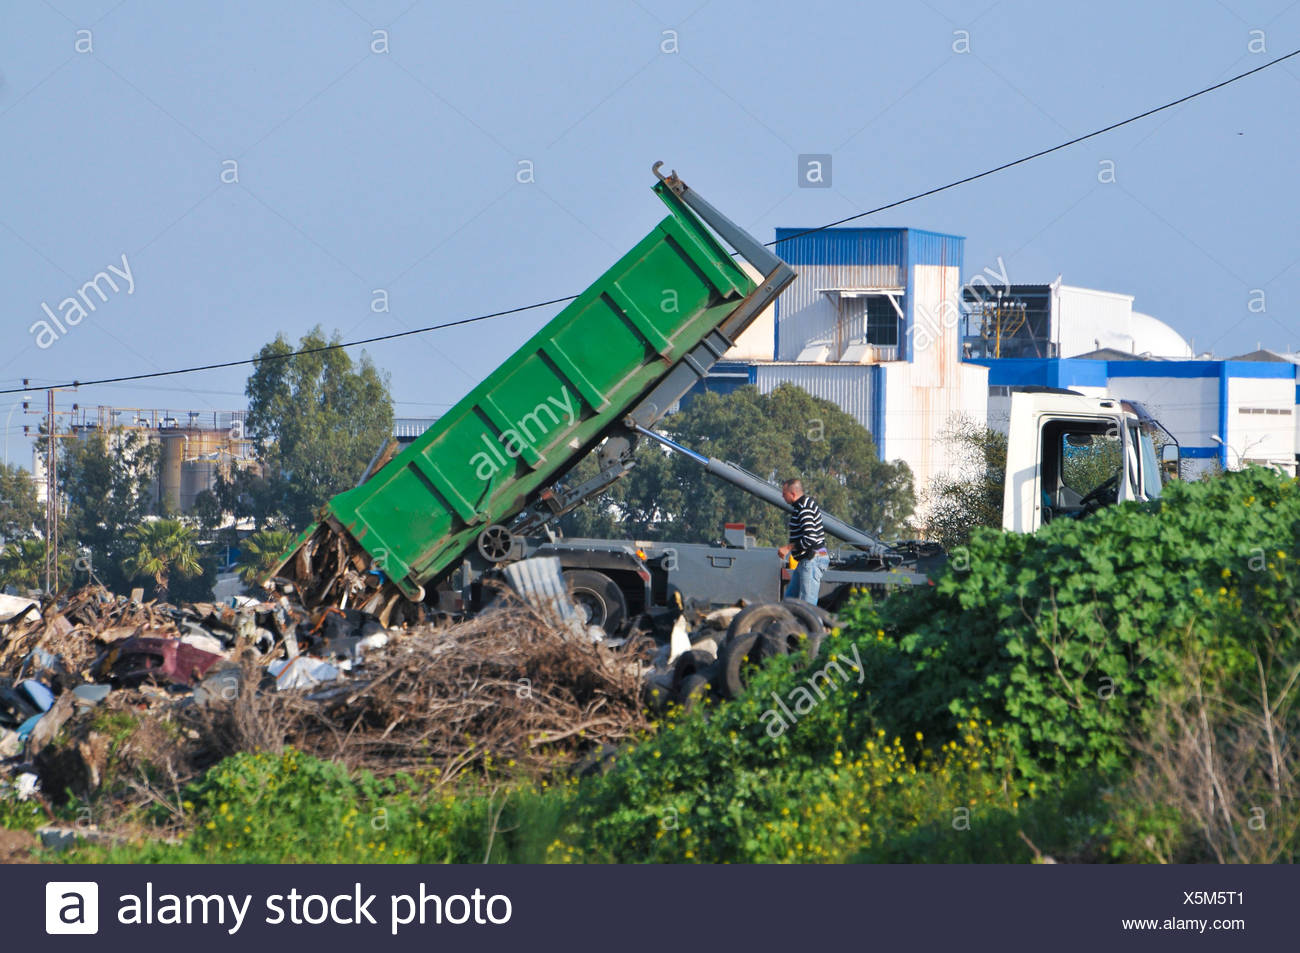 Illegal Littering - a truck dumps trash in a vacant field - Stock Image